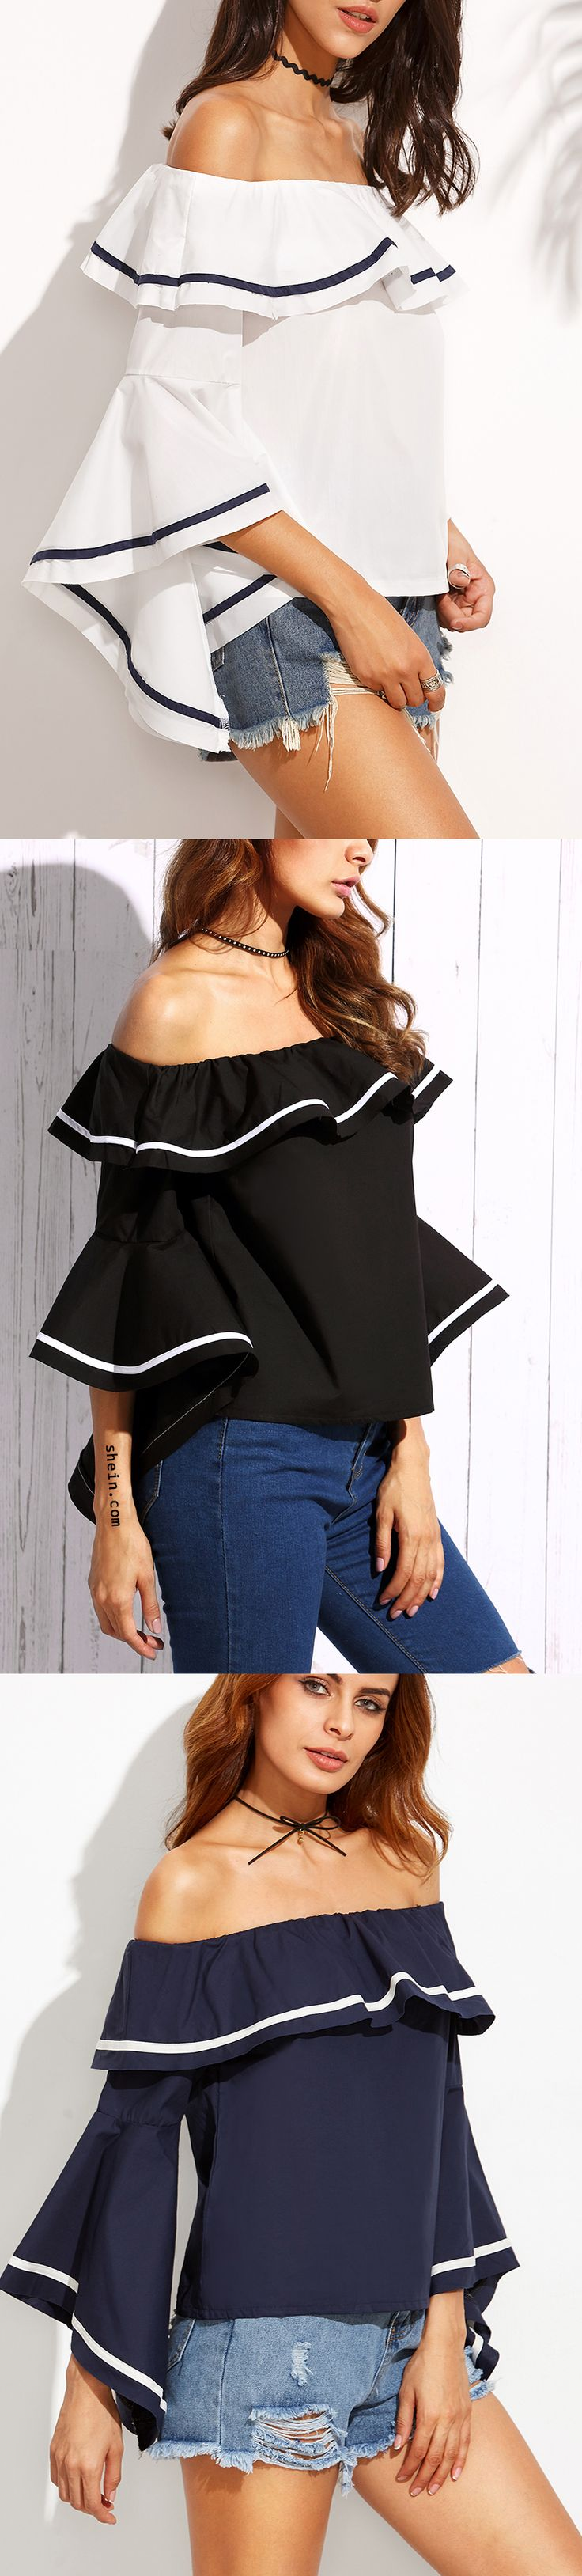 Hot! - Elegant Striped Trim Ruffle Off Shoulder Top from shein. 40% off 1st order!